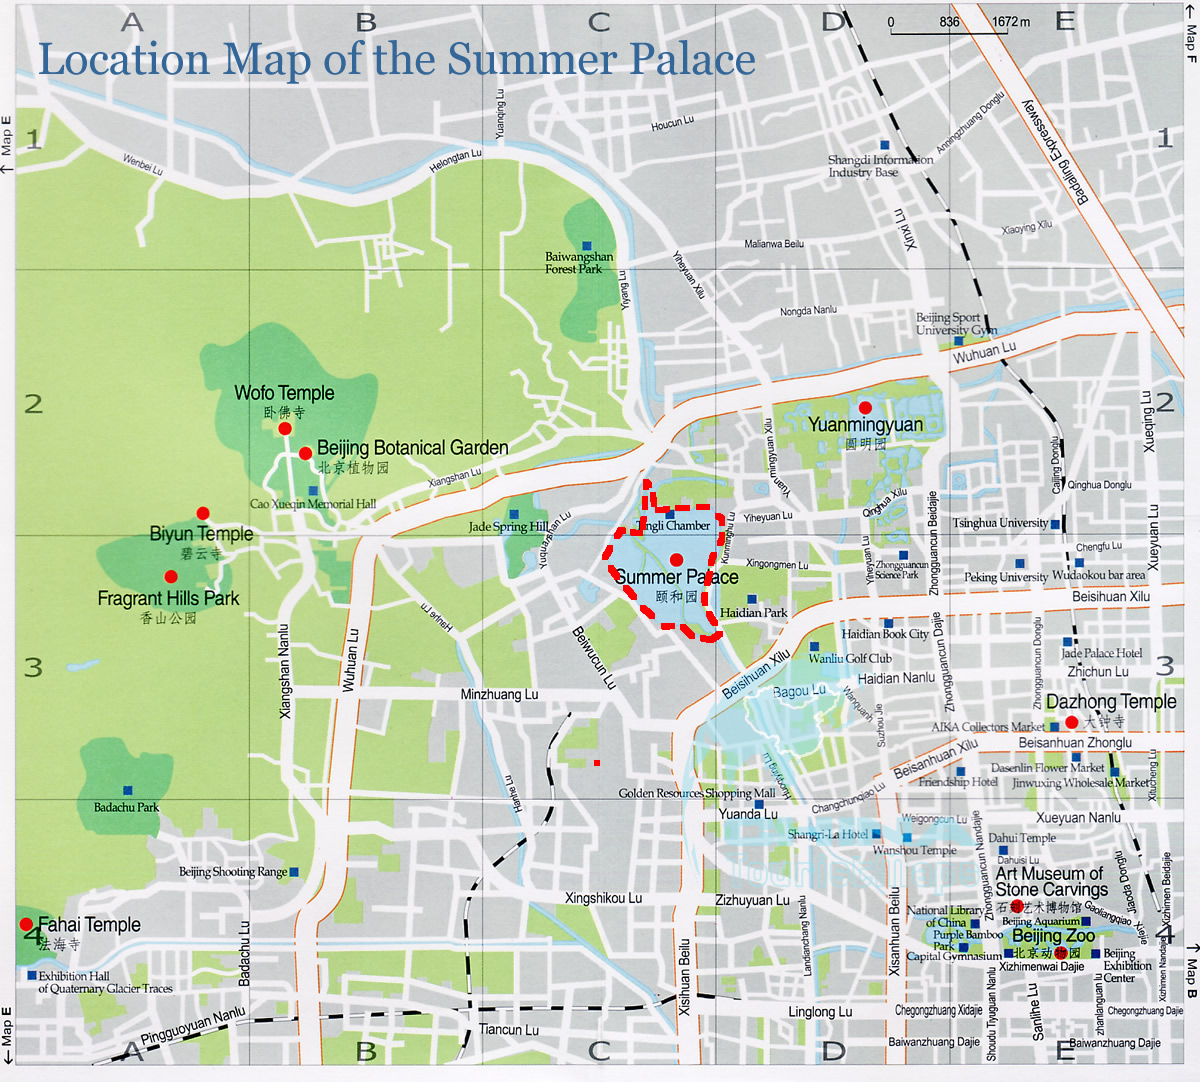 Map Of China And Surrounding Areas.Location Map Of The Summer Palace And Surrounding Area Beijing China